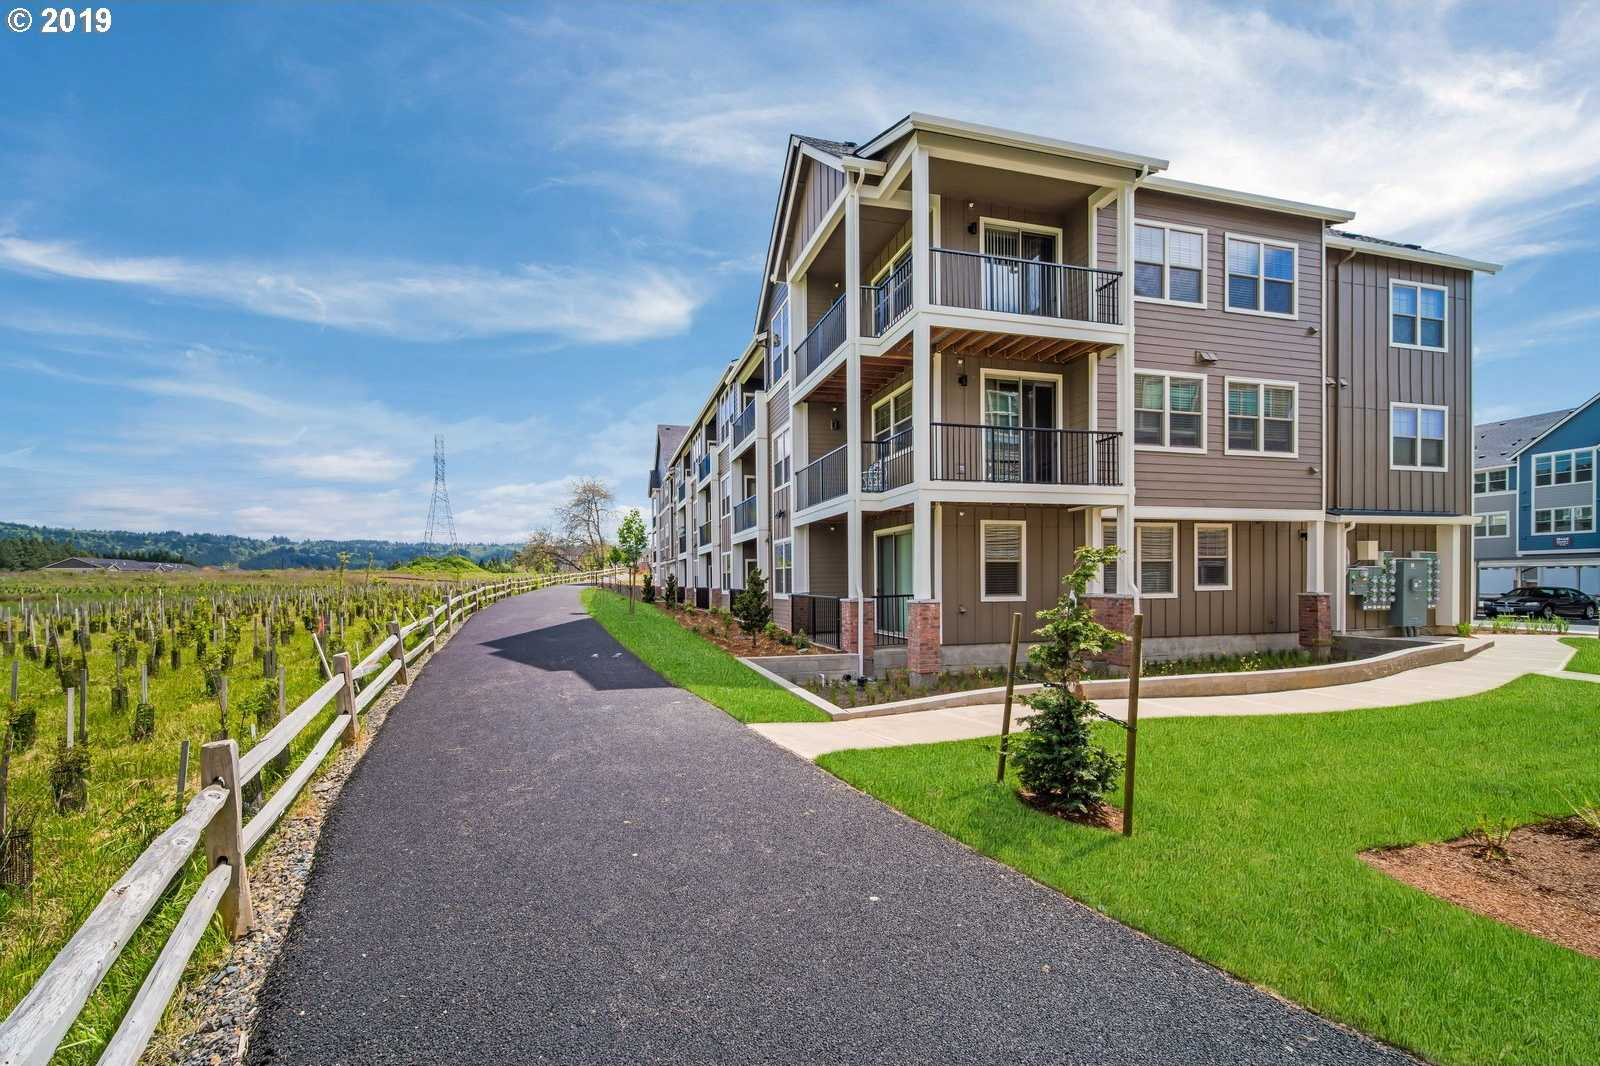 $201,990 - 1Br/1Ba -  for Sale in Northcroft At Bethany, Portland